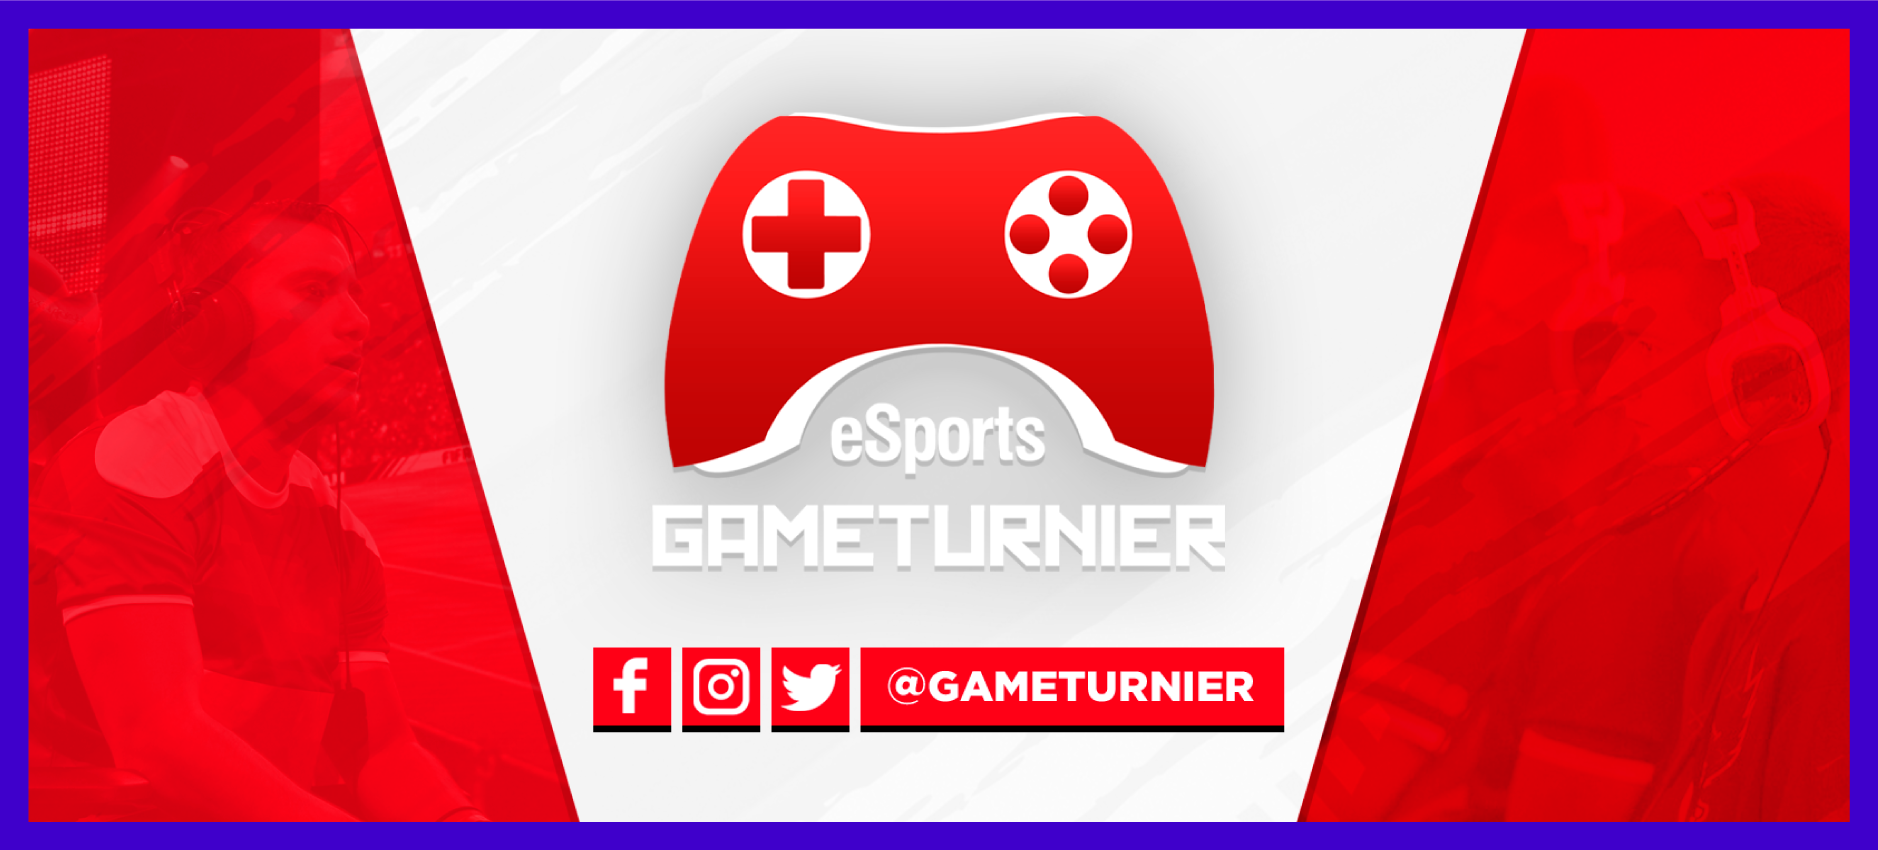 GameTurnier is an esports platform where you can participate in tournaments of video games like FIFA, Call of Duty, Fortnite and more